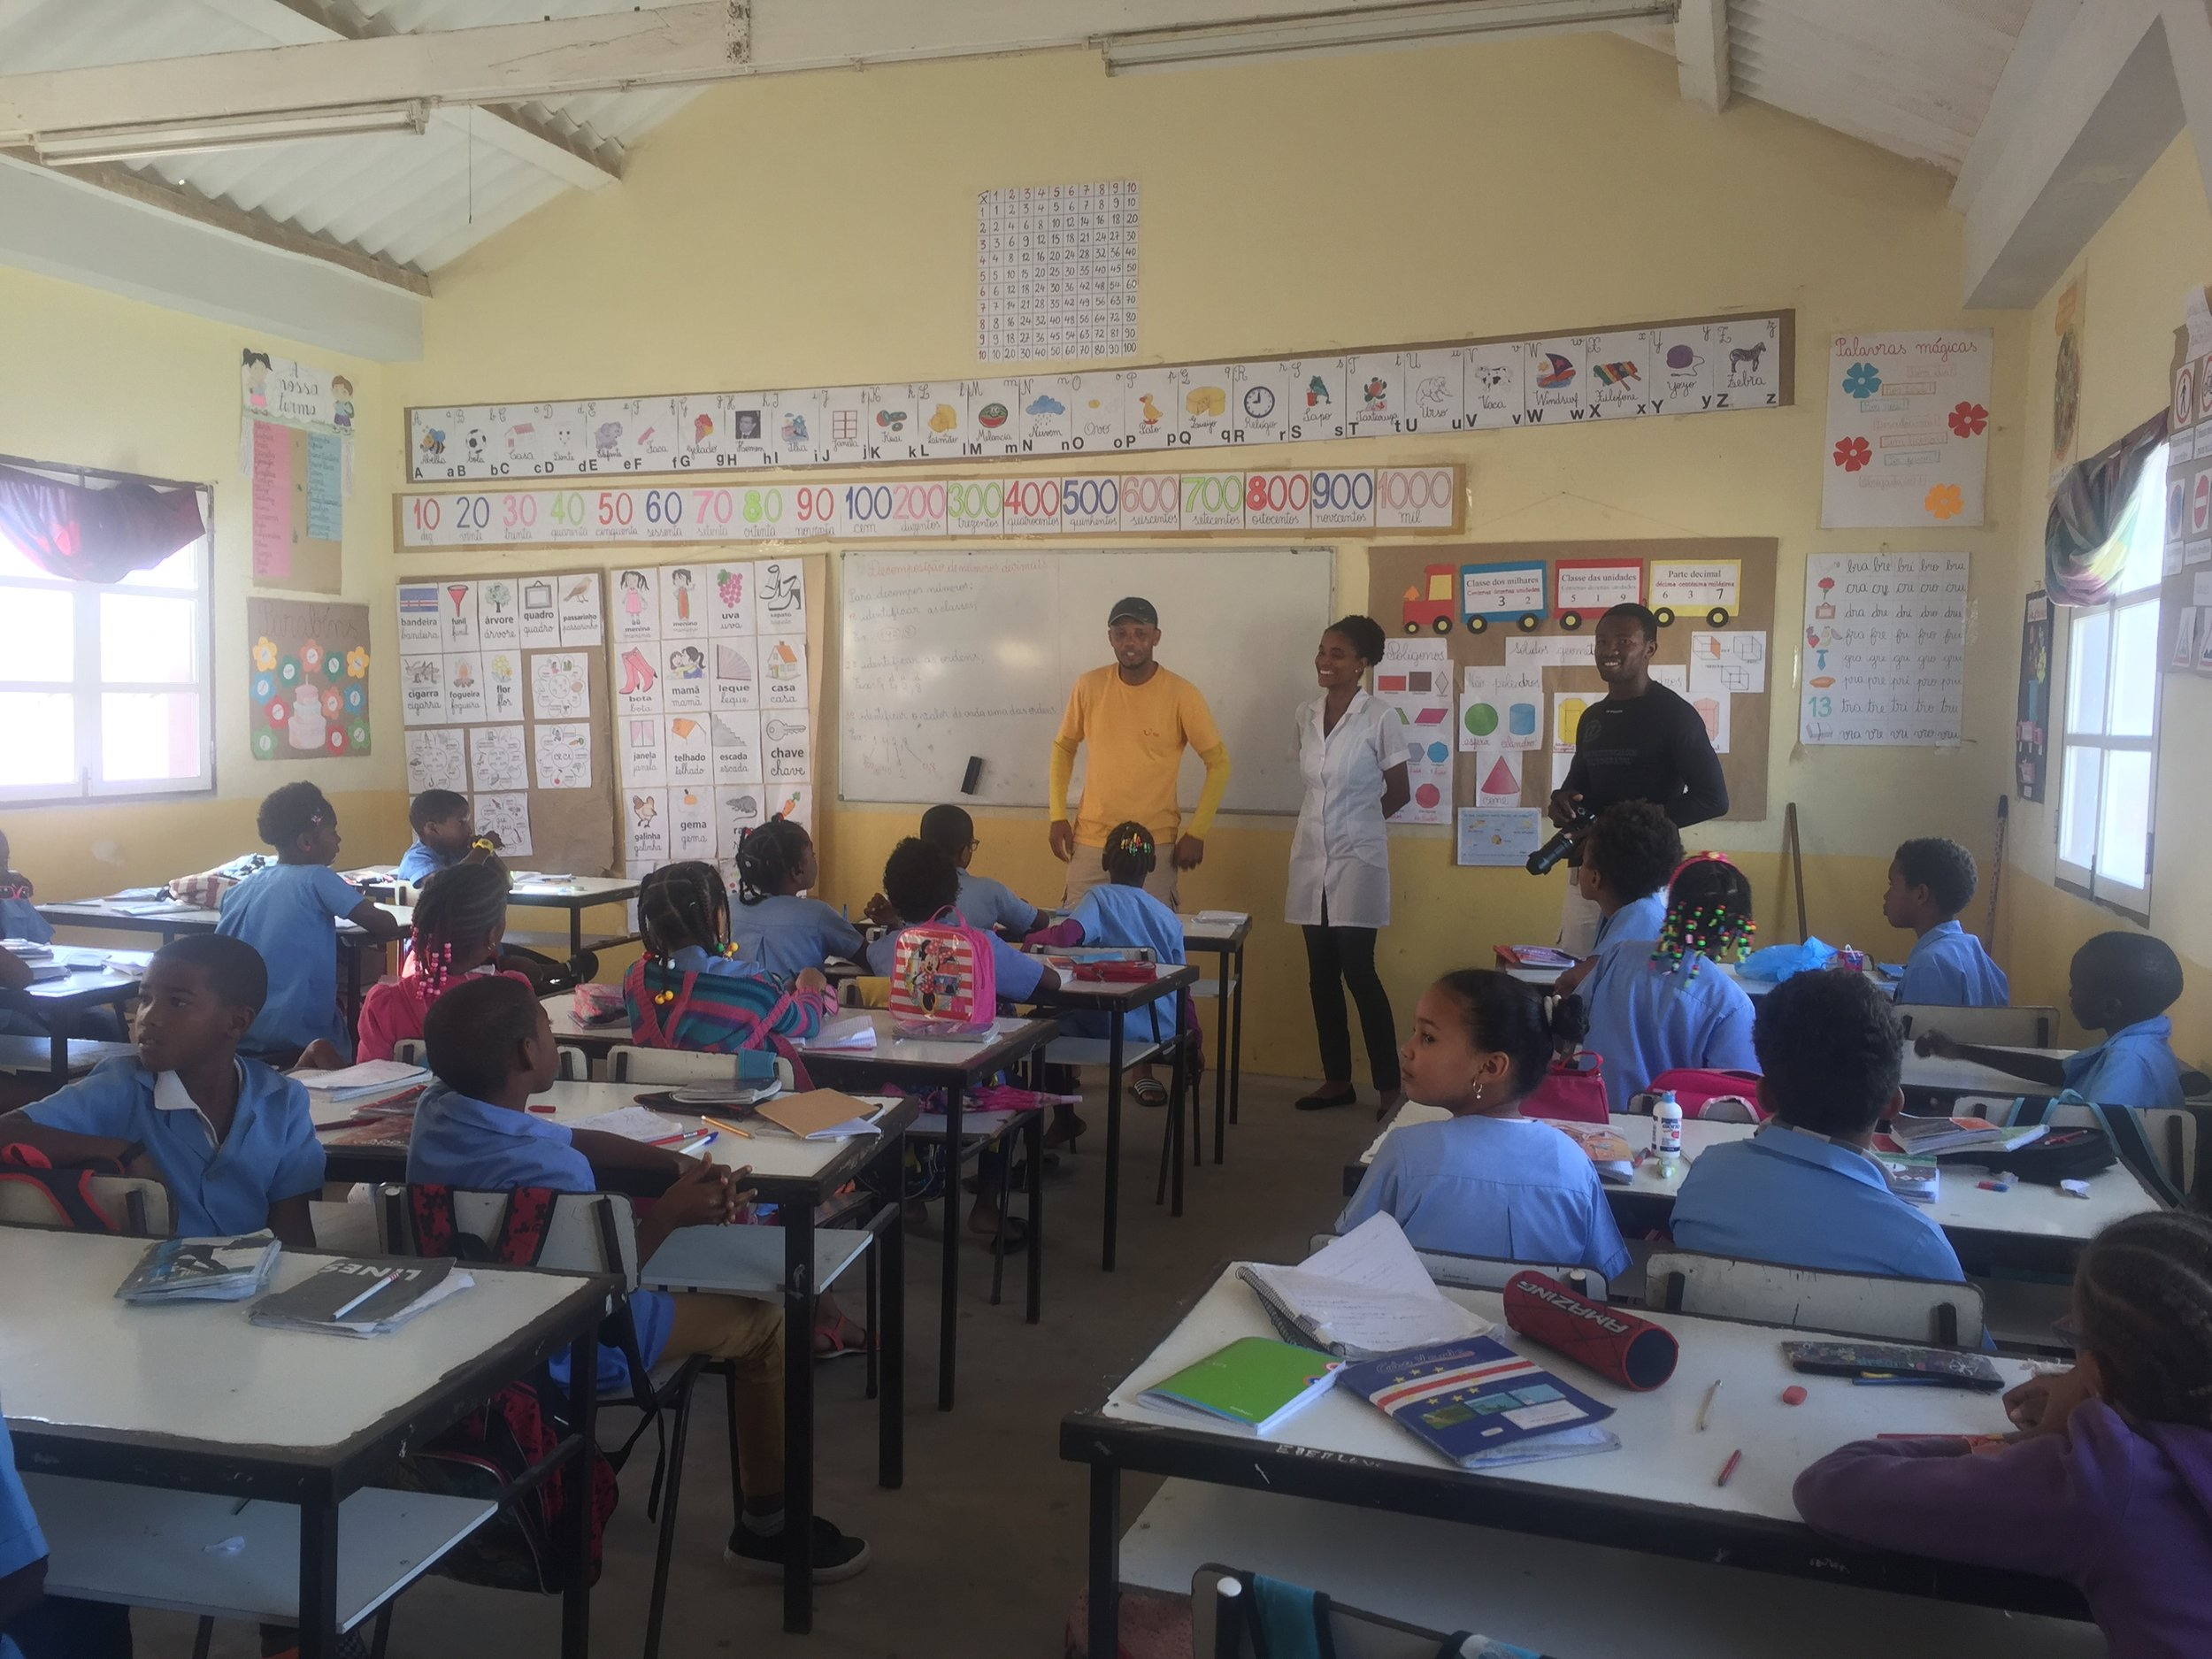 """A classroom in Sal Re's school - a thought provoking visit for many reasons. One girl had a """"Frozen"""" pencil case, but as she lived in the local shanty town she probably had no idea of the Disney film or characters"""